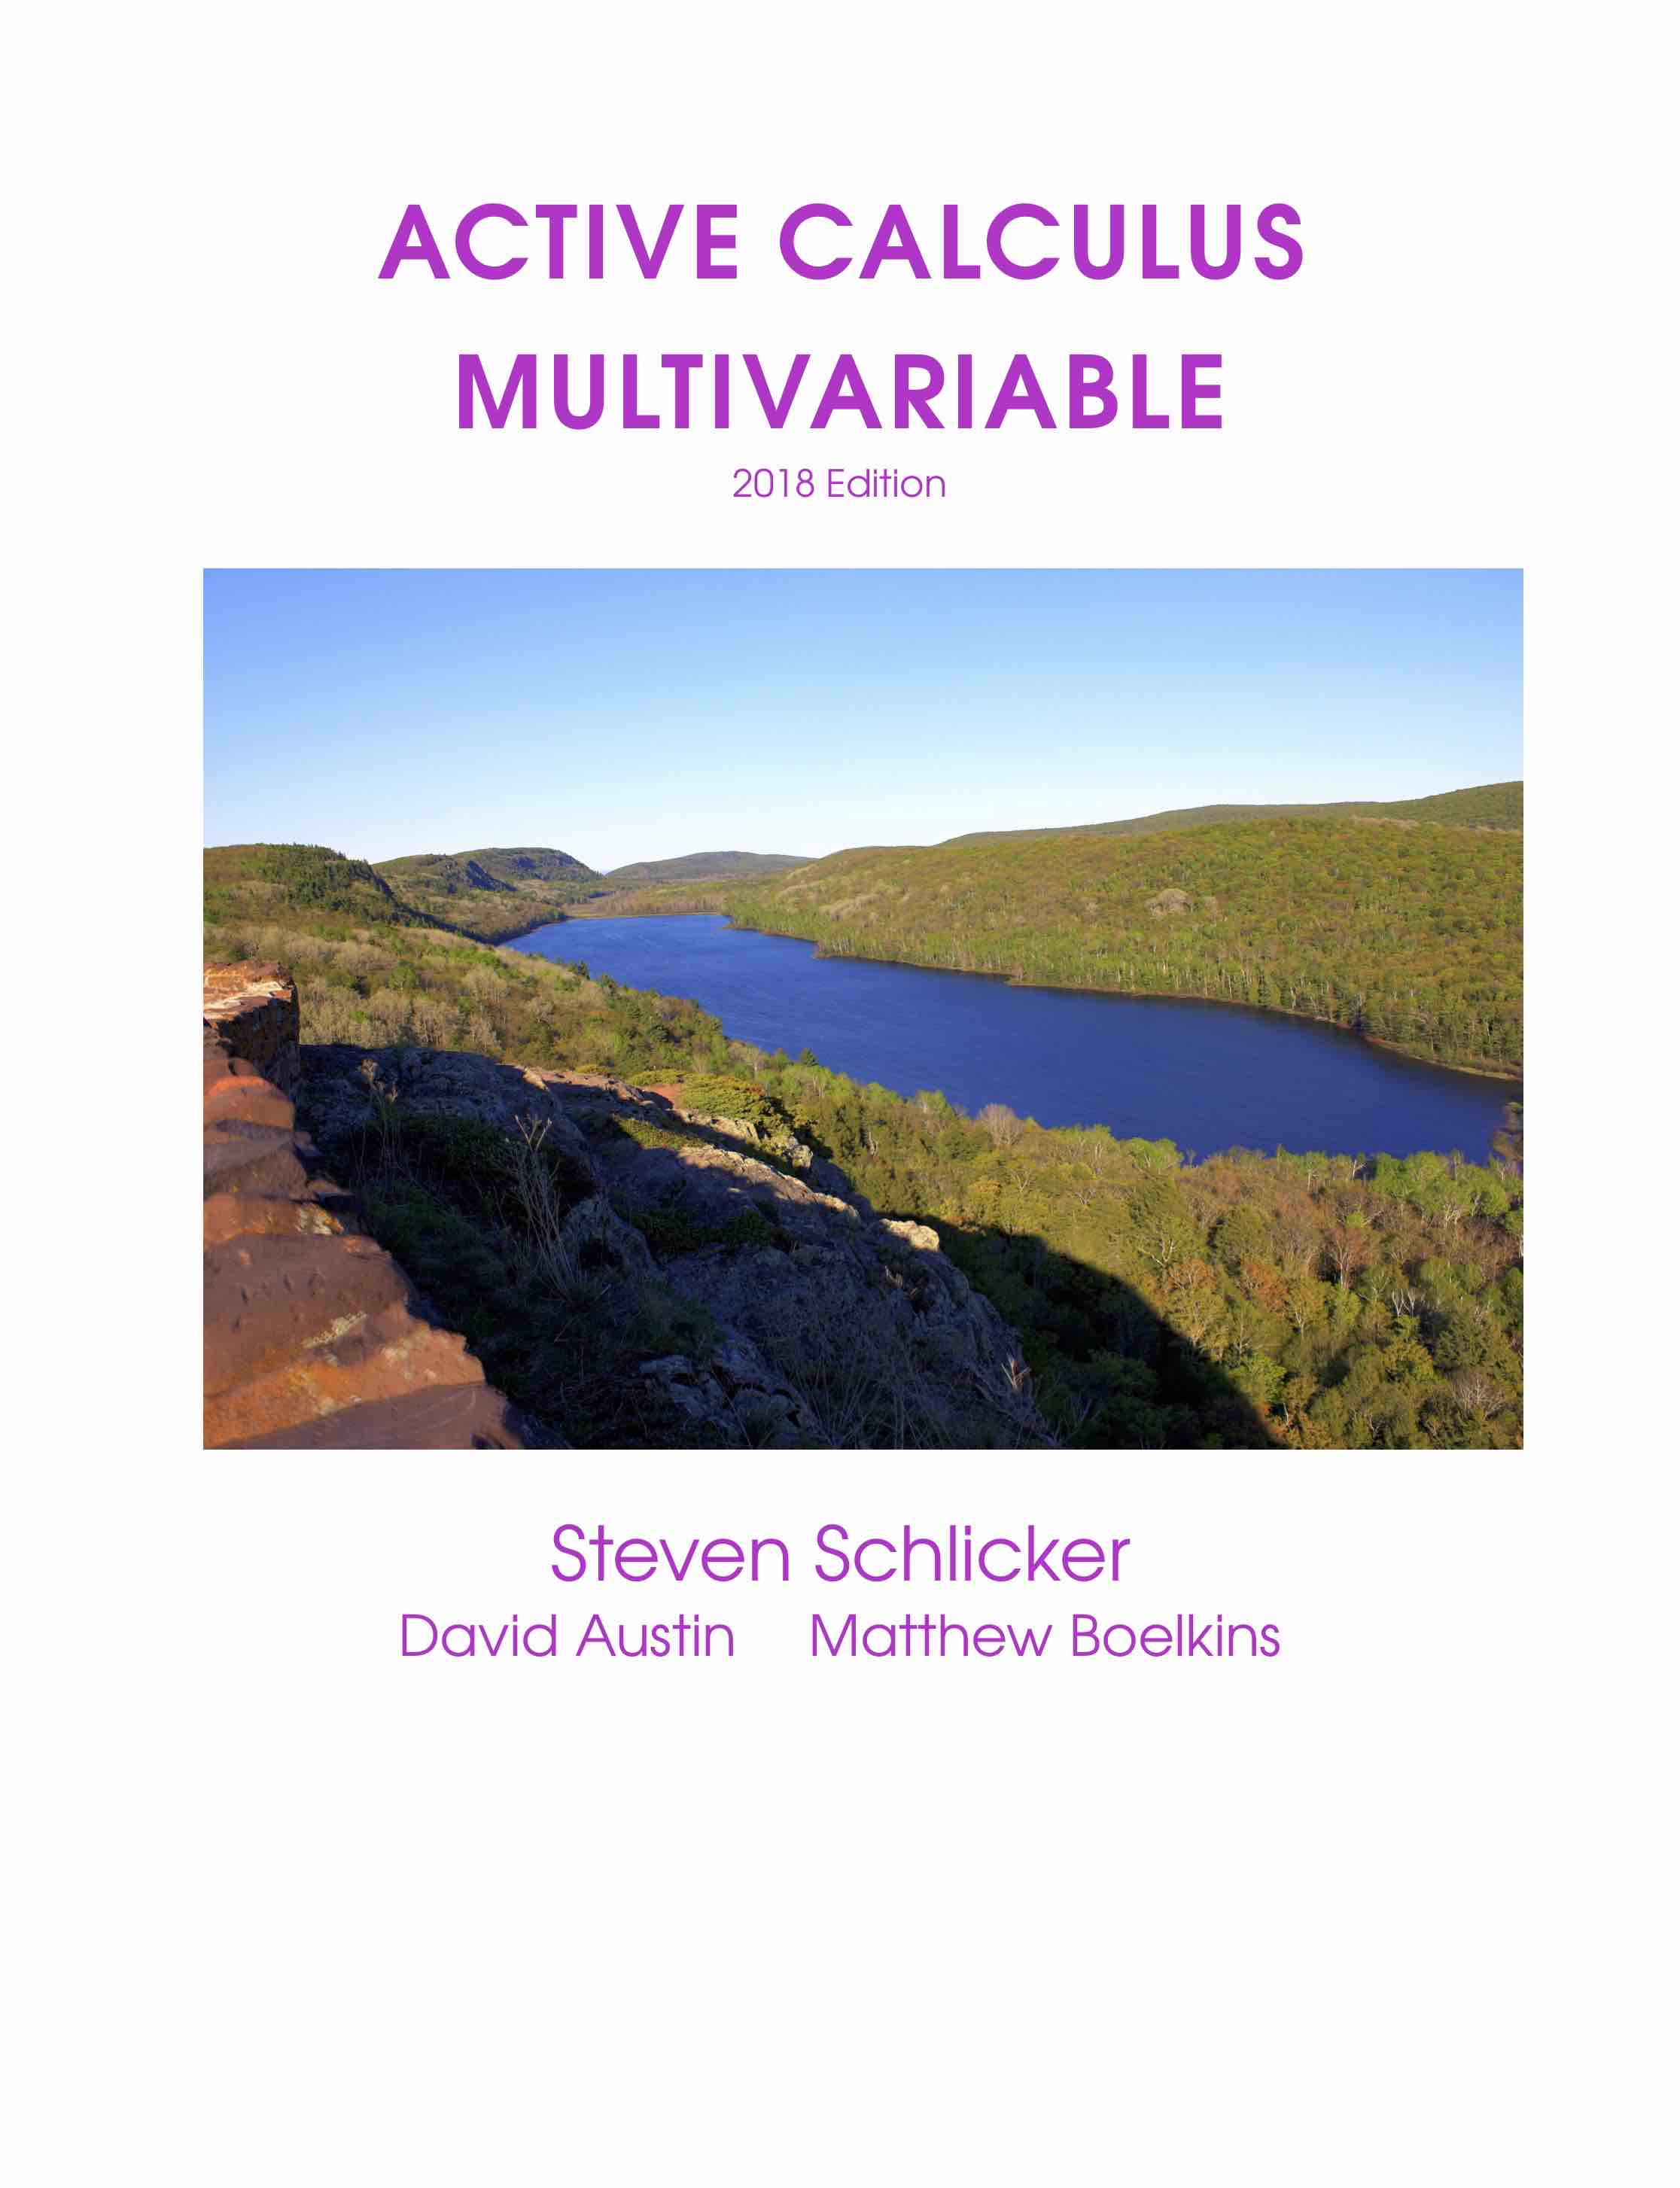 Active Calculus Multivariable book cover showing lake in the mountains